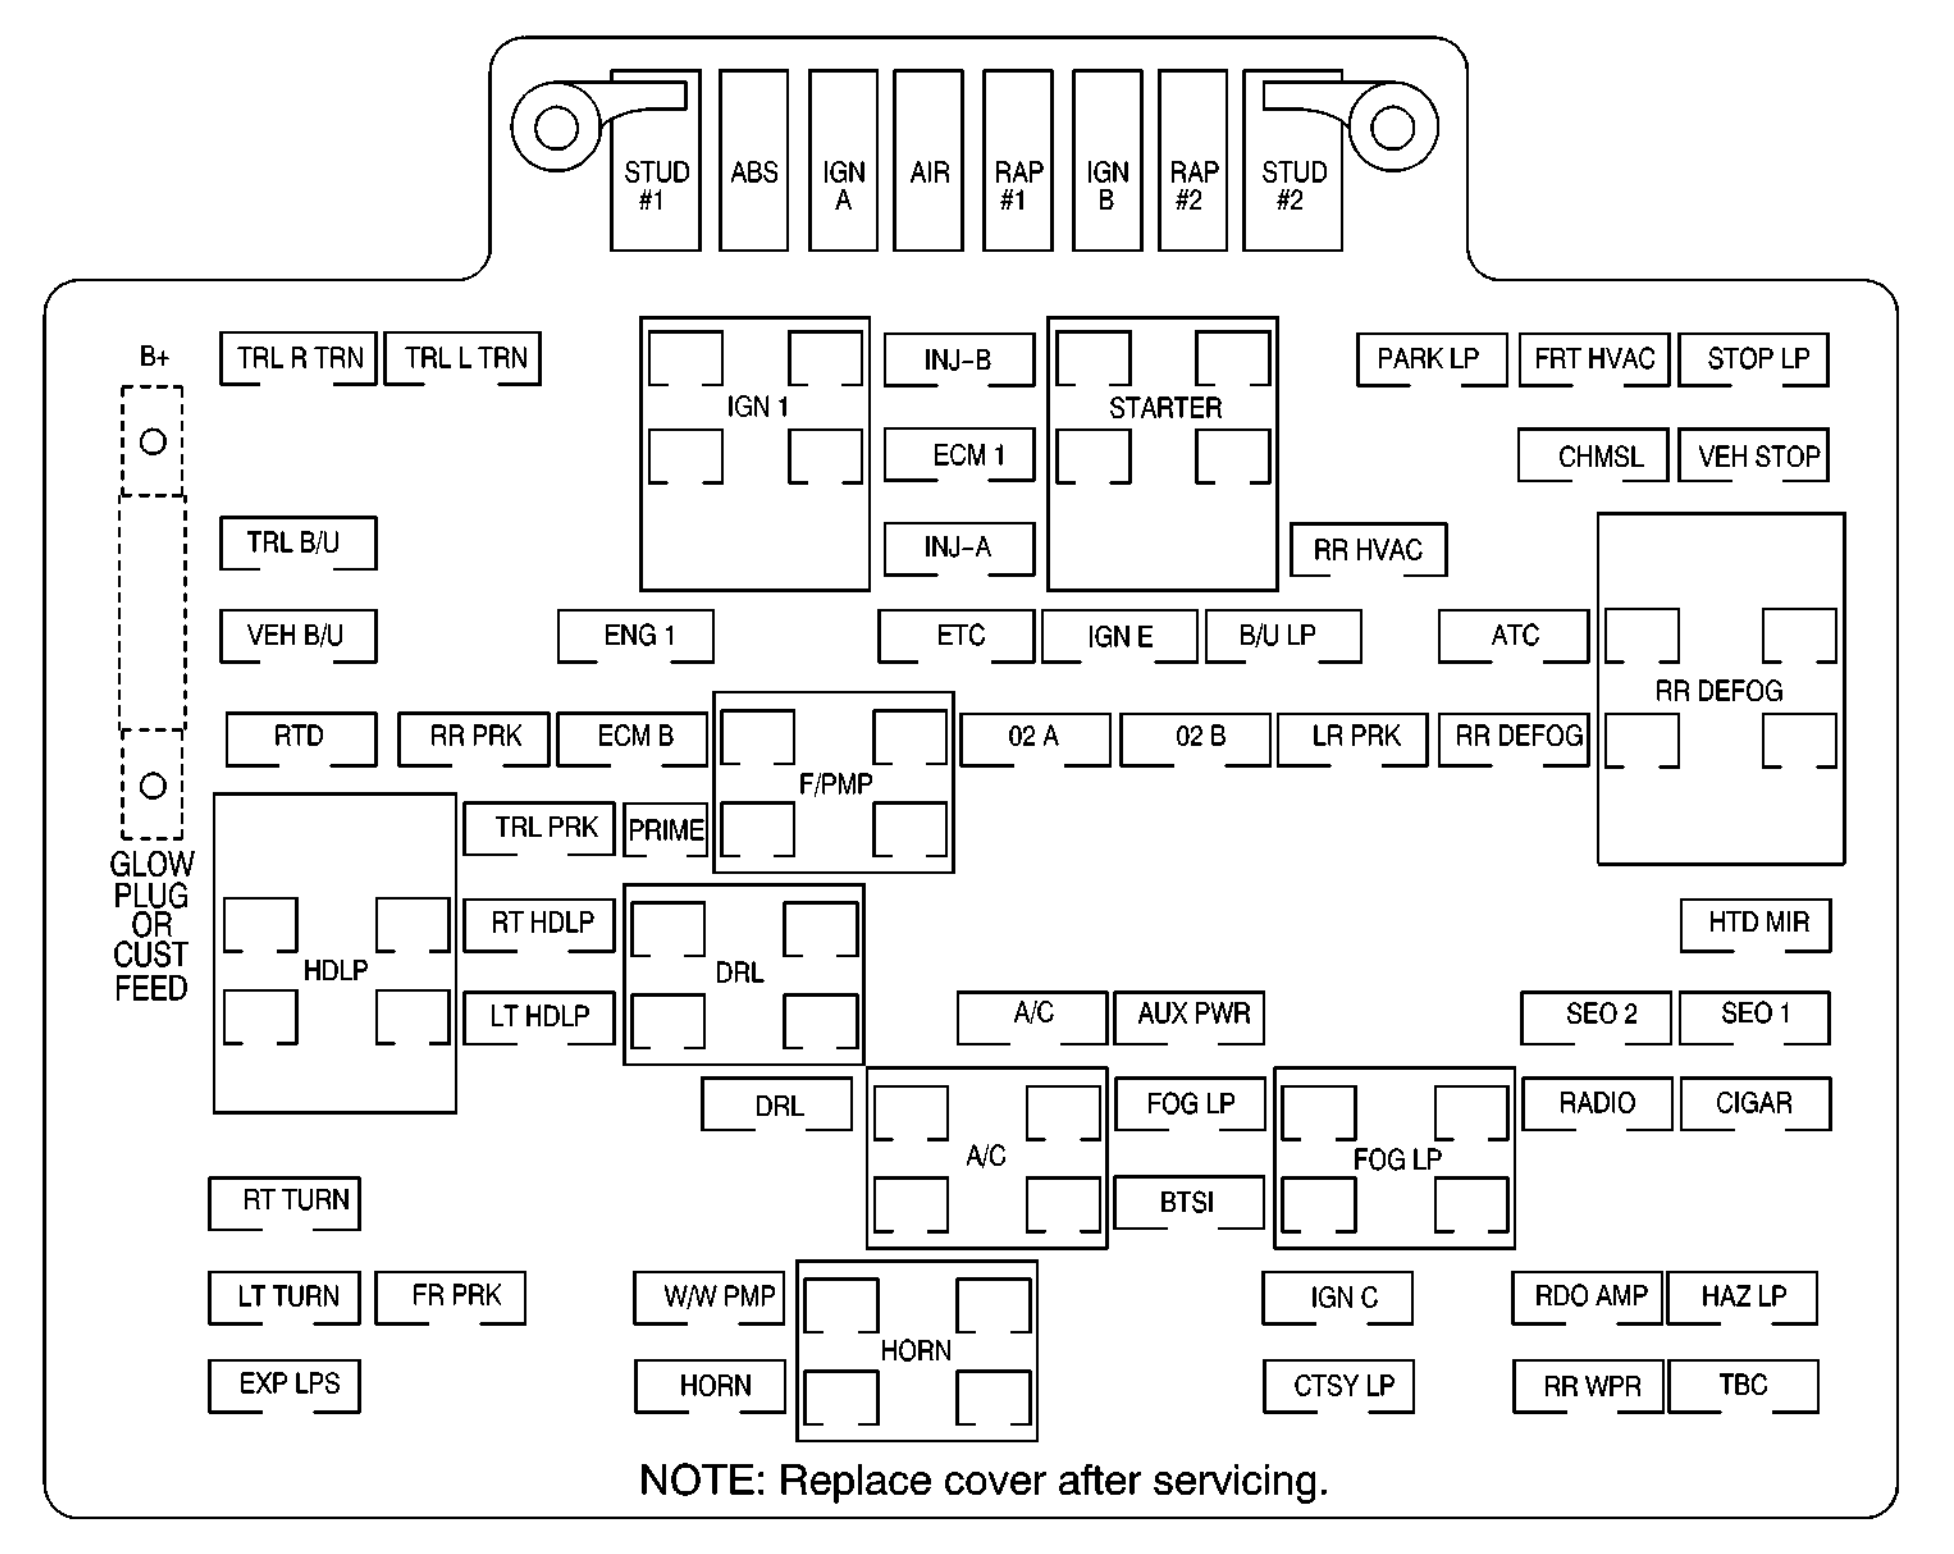 Tahoe Fuse Box Wiring Diagram Sample 2000 Chevy Astro Van Wiring 2000 Chevy Astro  Van Fuse Box Location